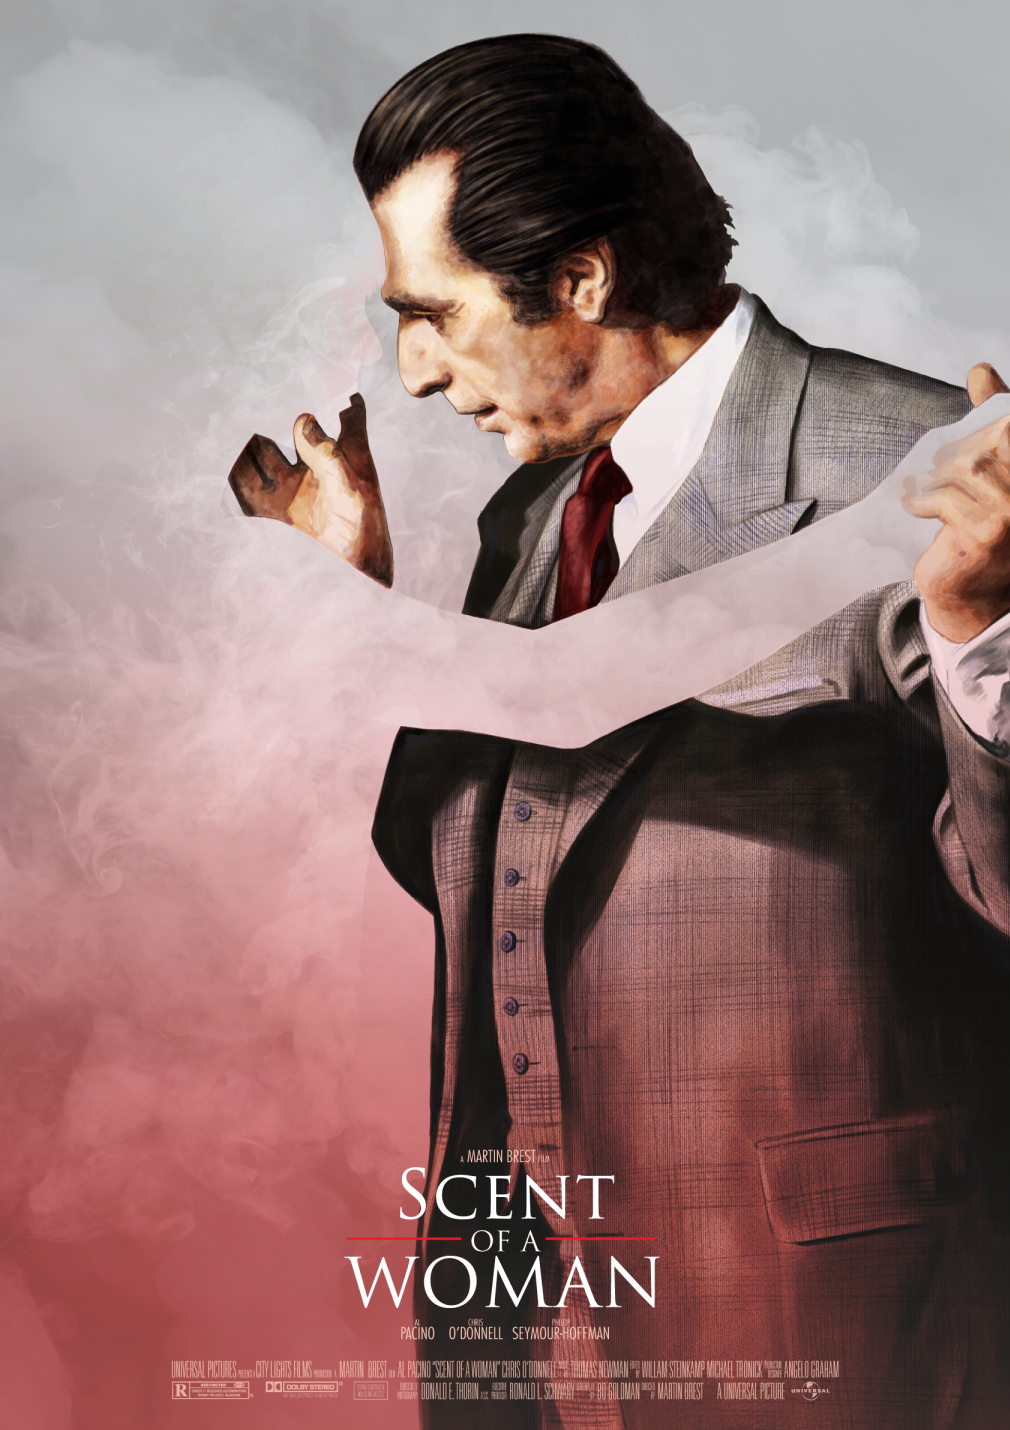 Scent Of A Woman Poster Ben Toupein